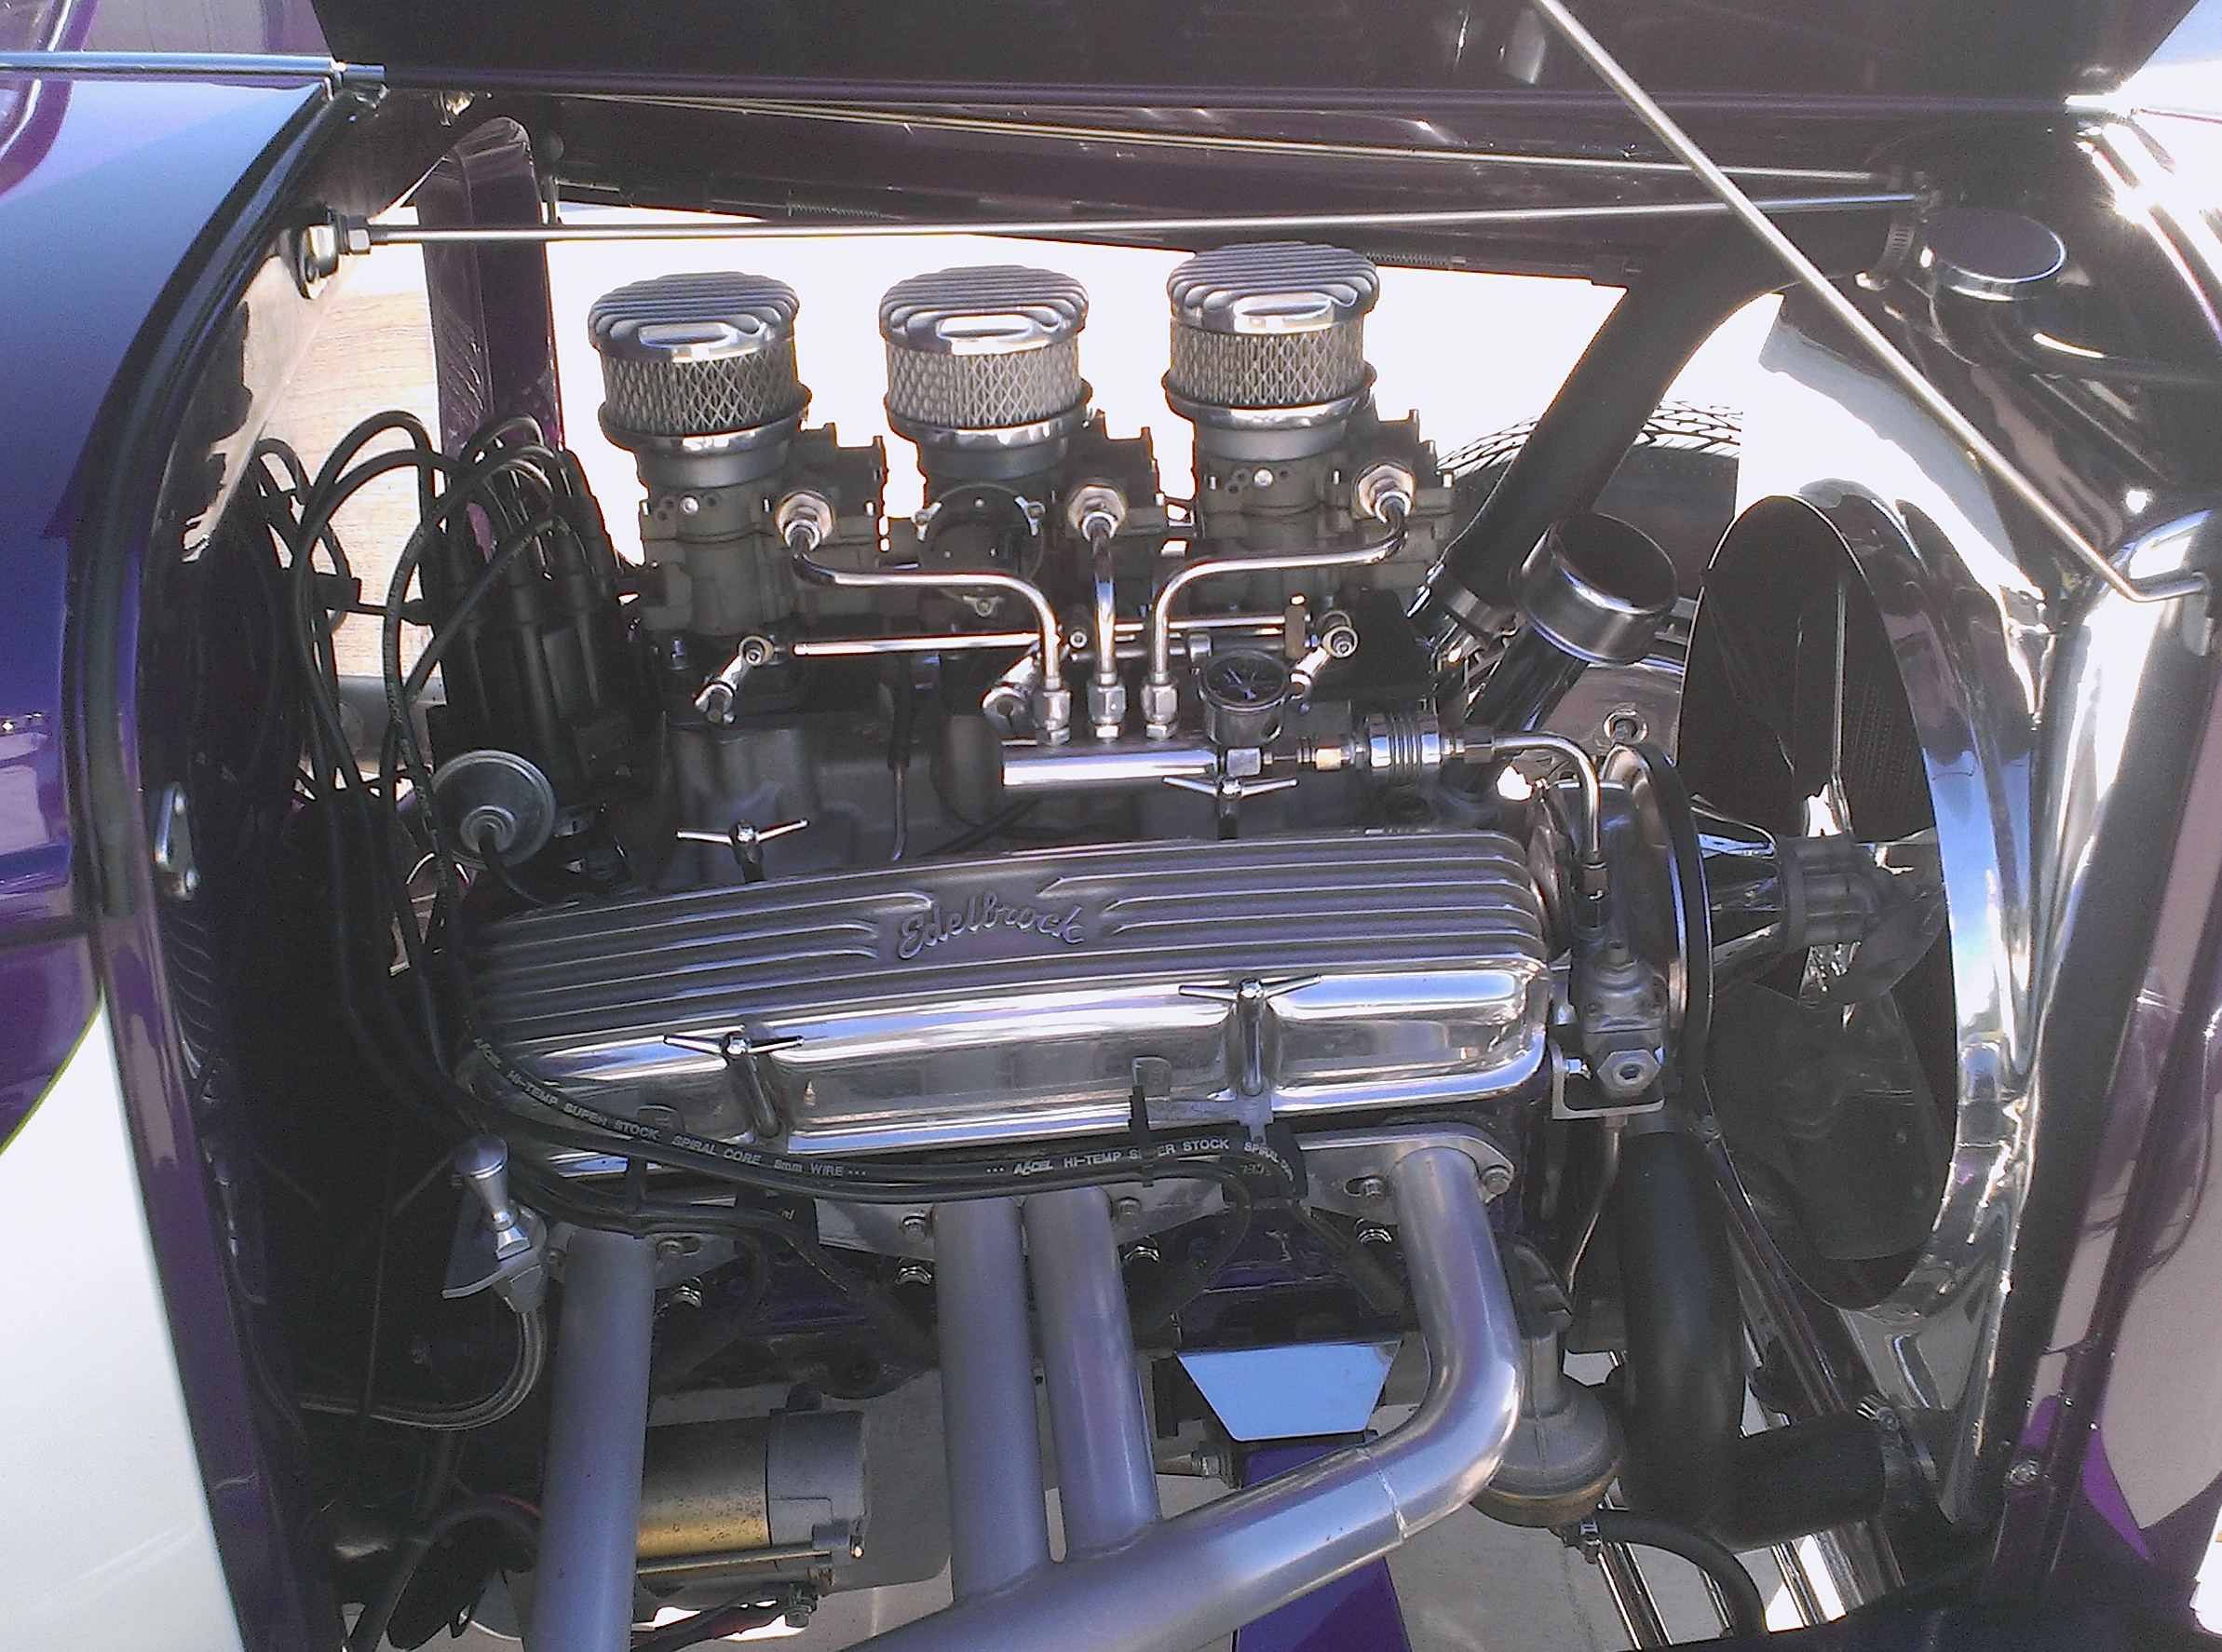 AUTOMOTION<br>Hot Rod Carbs<br>Tri-Power Built To Last<br>16+ years without any additional maintenance or tuning